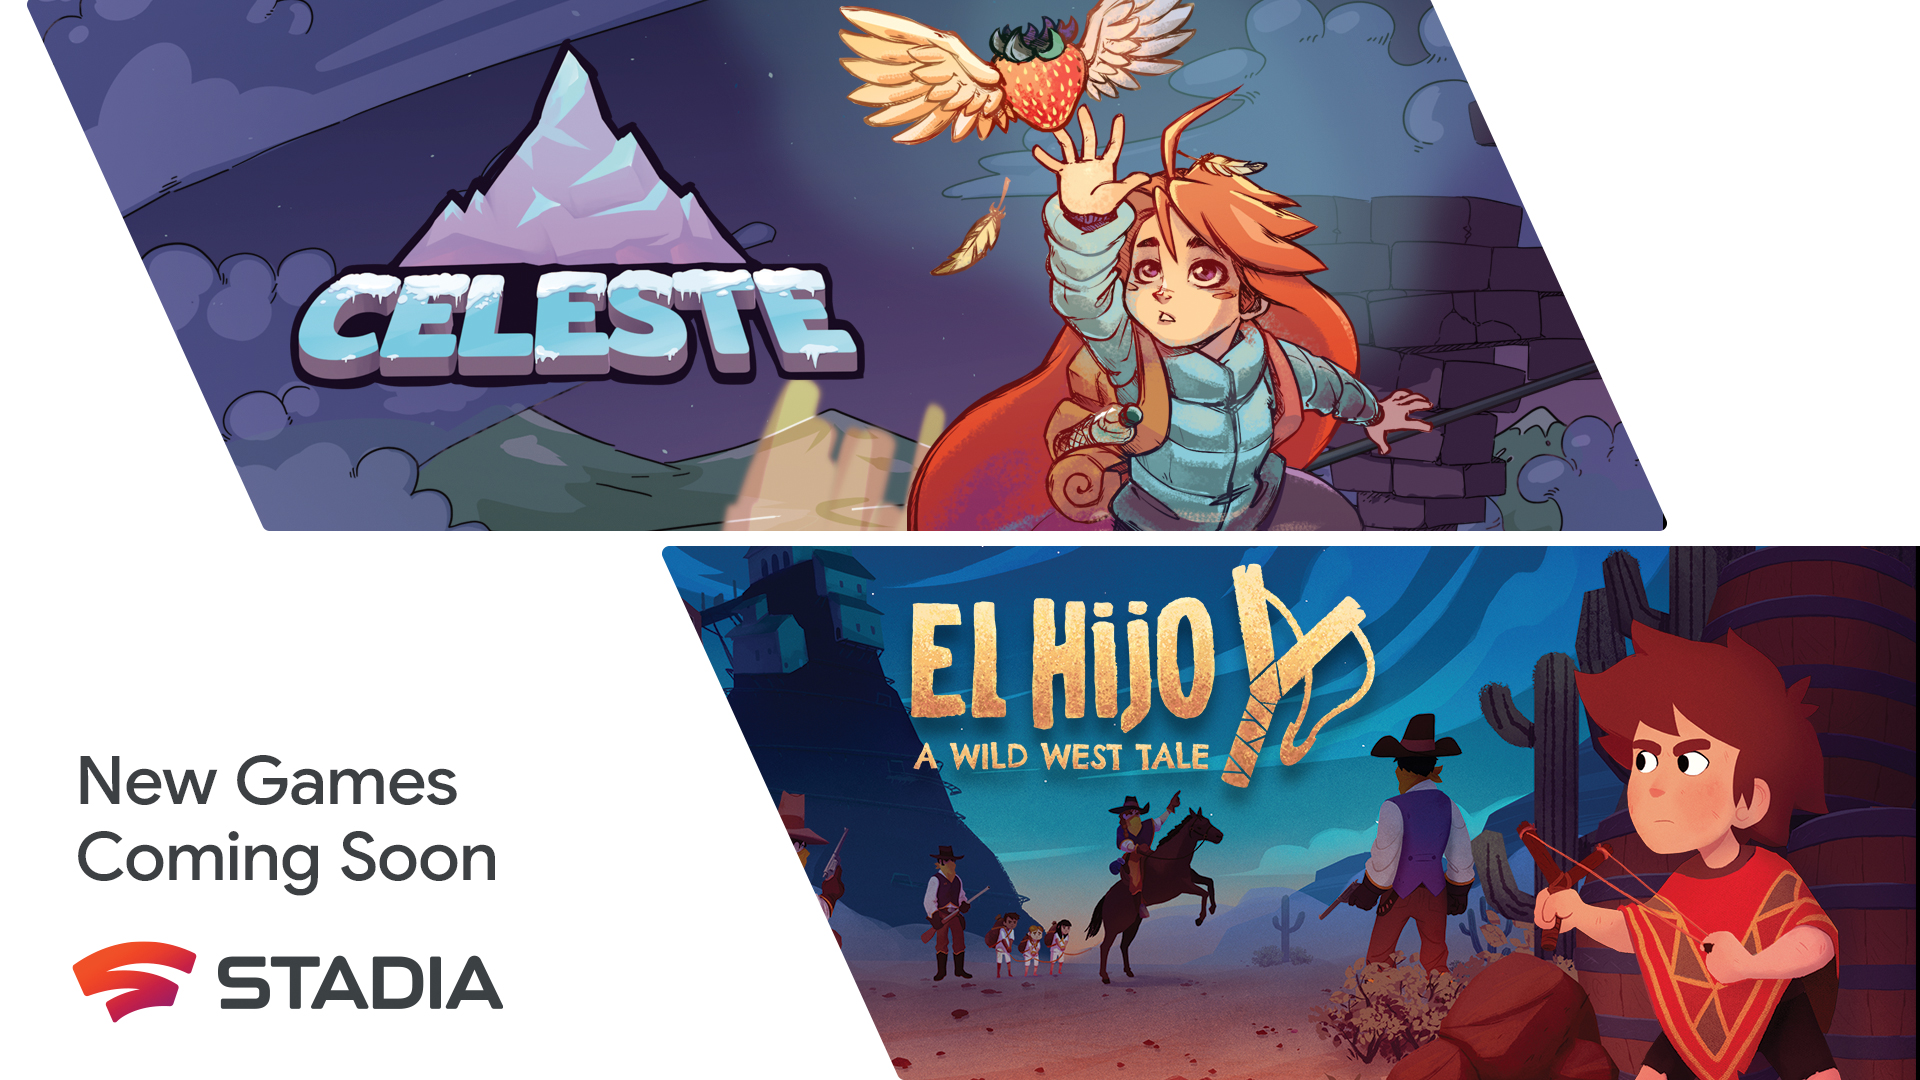 New Games Coming To Stadia